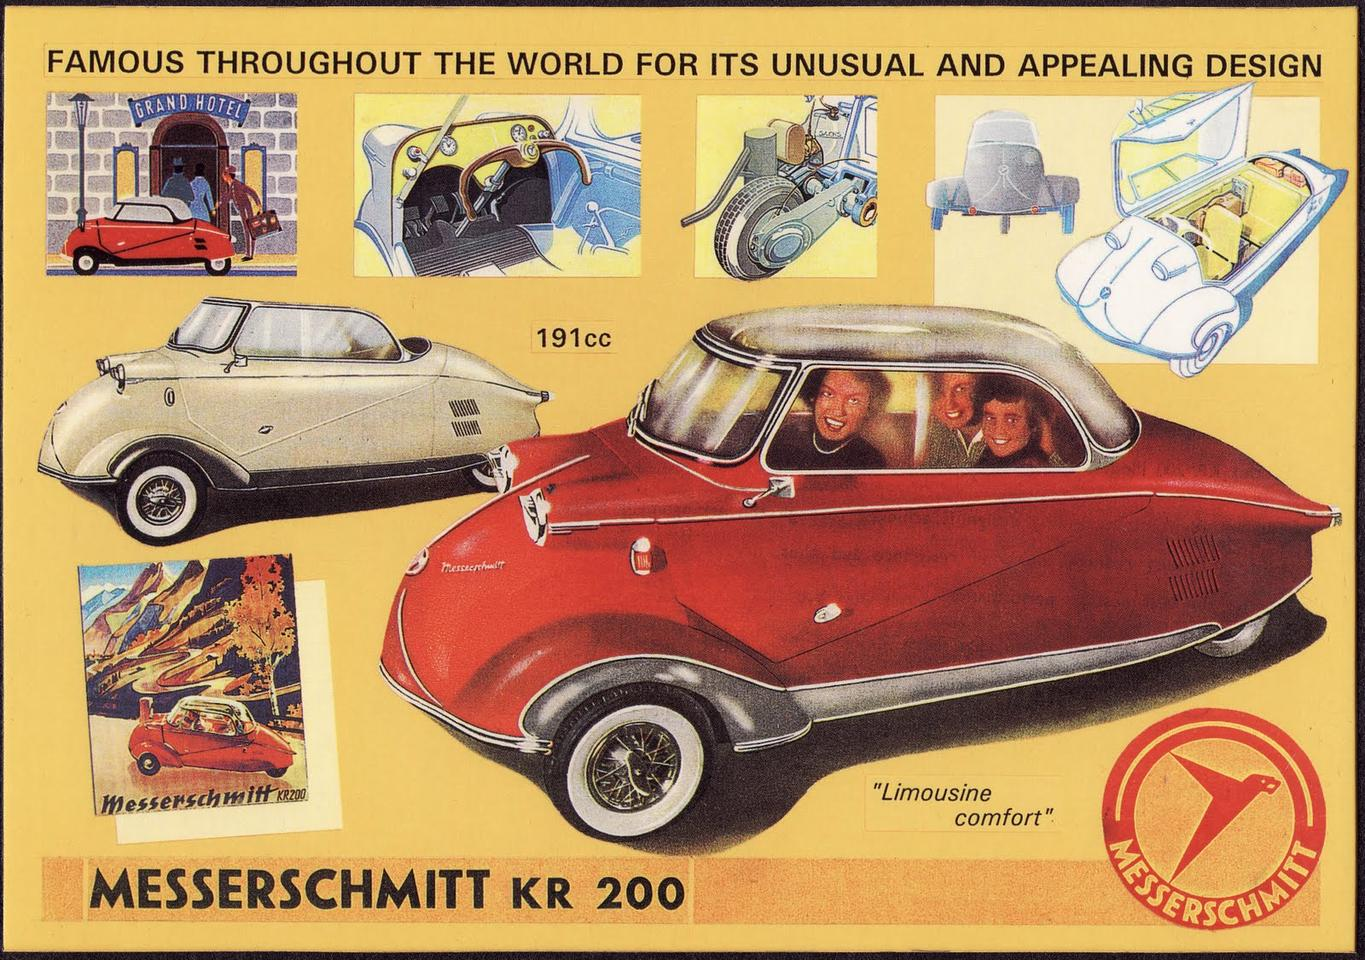 An ad for the original Messershmitt KR200